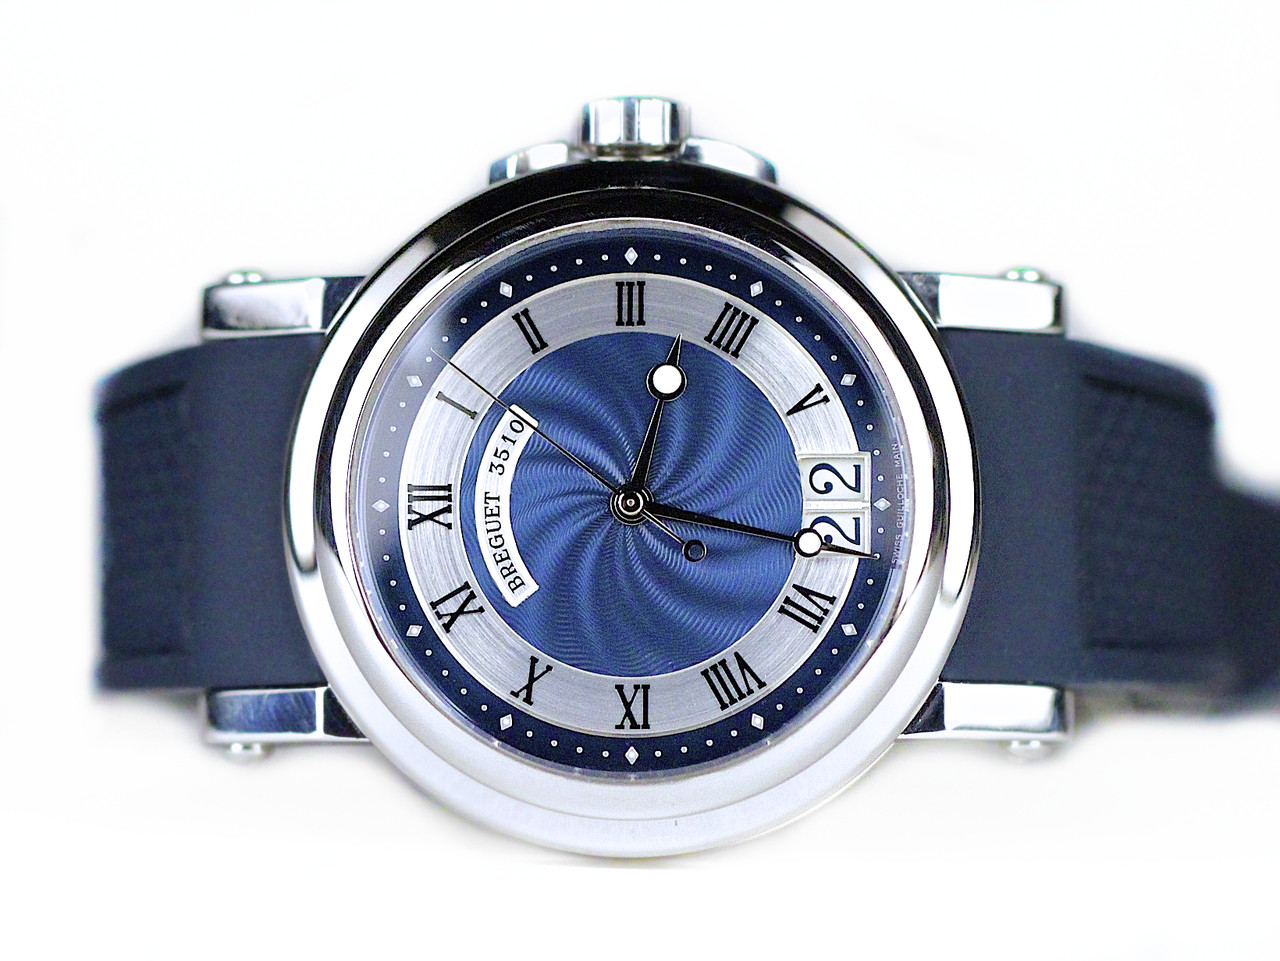 Breguet watch marine steel blue dial blue rubber strap 5817 used for sale from legend of time for Marine watches